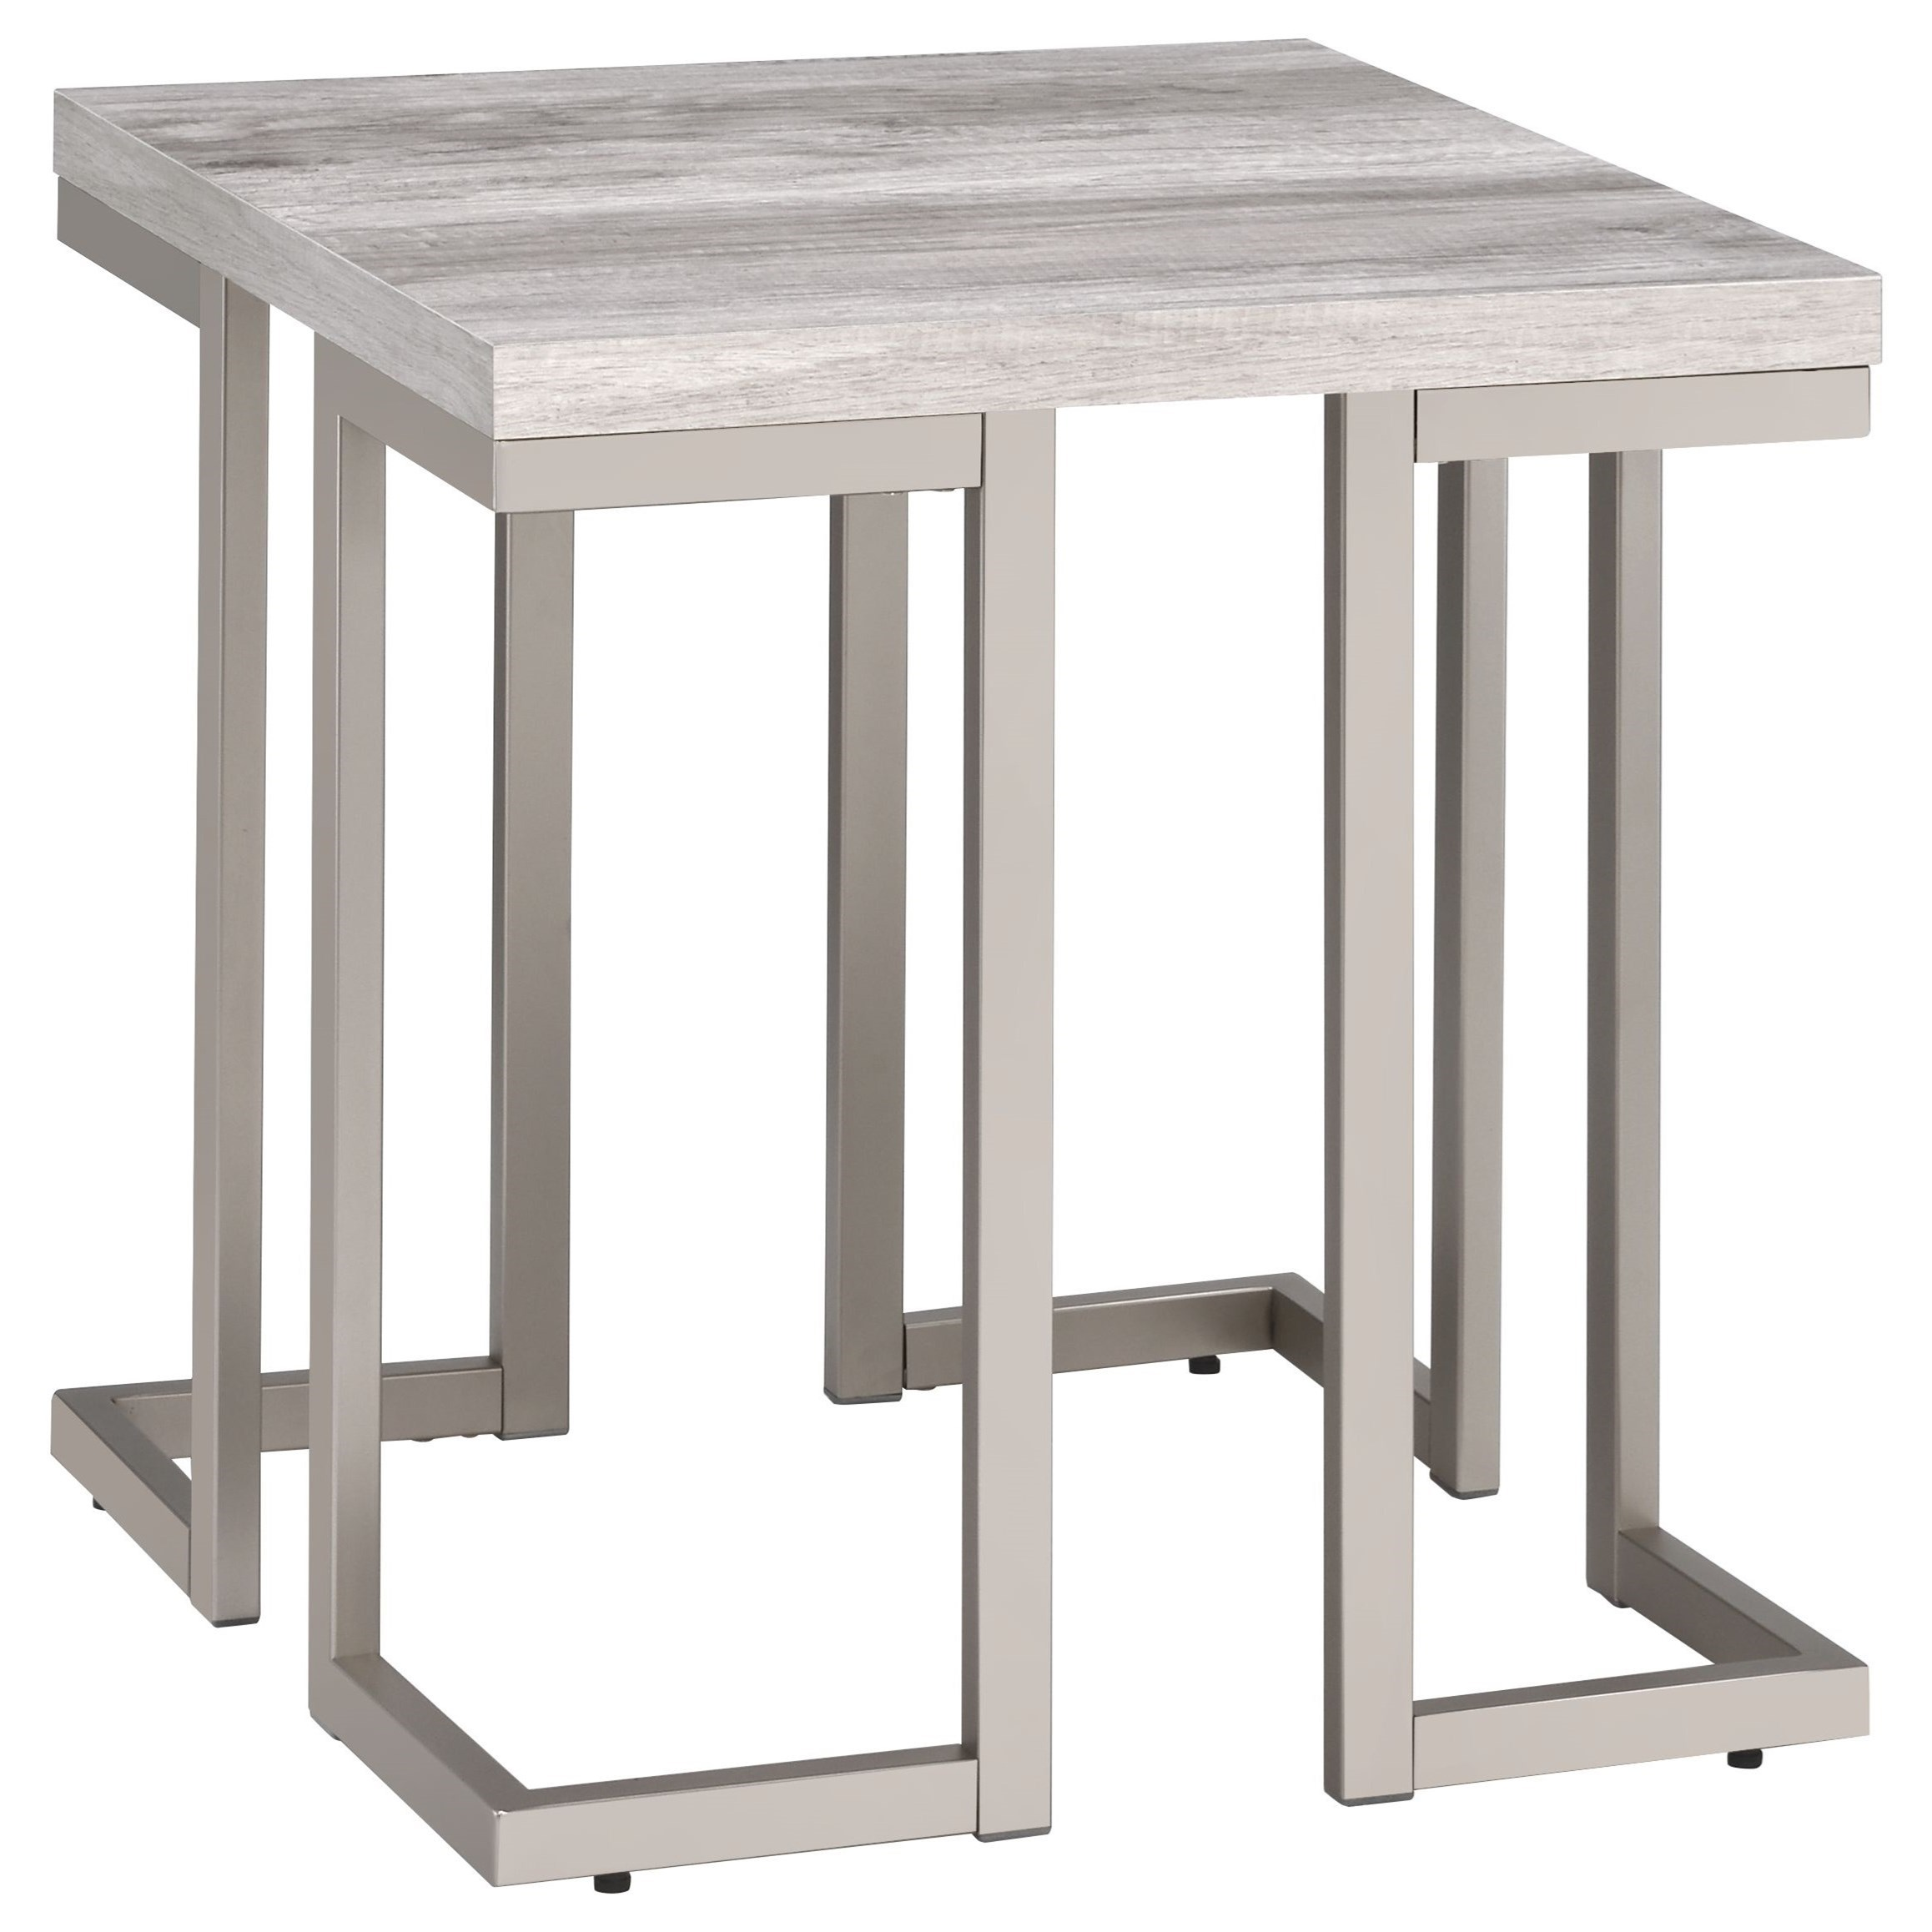 David End Table by Steve Silver at Northeast Factory Direct